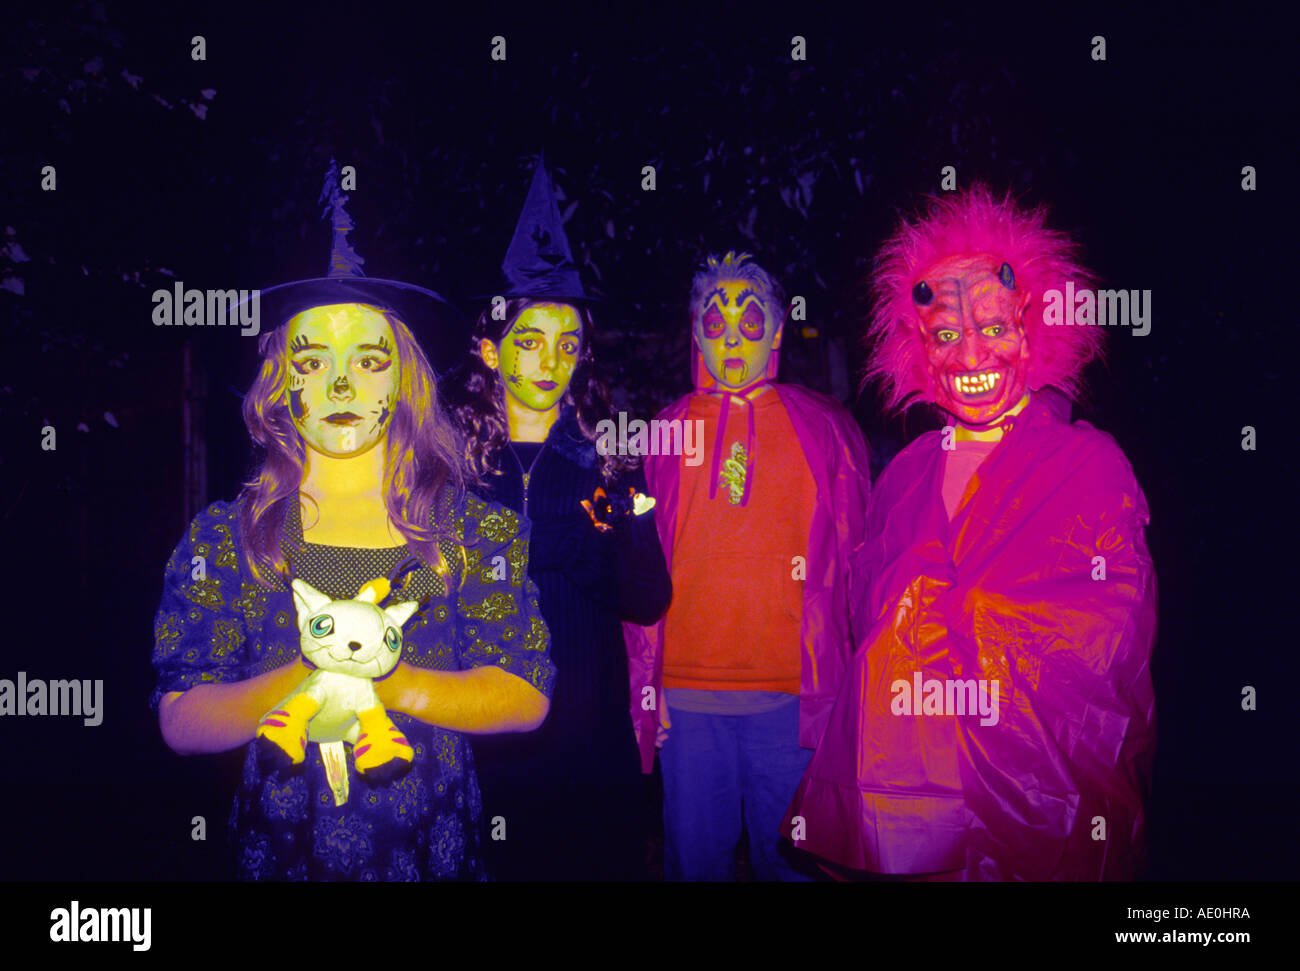 Four Children Aged 7 8 9 10 Years In Halloween Costumes